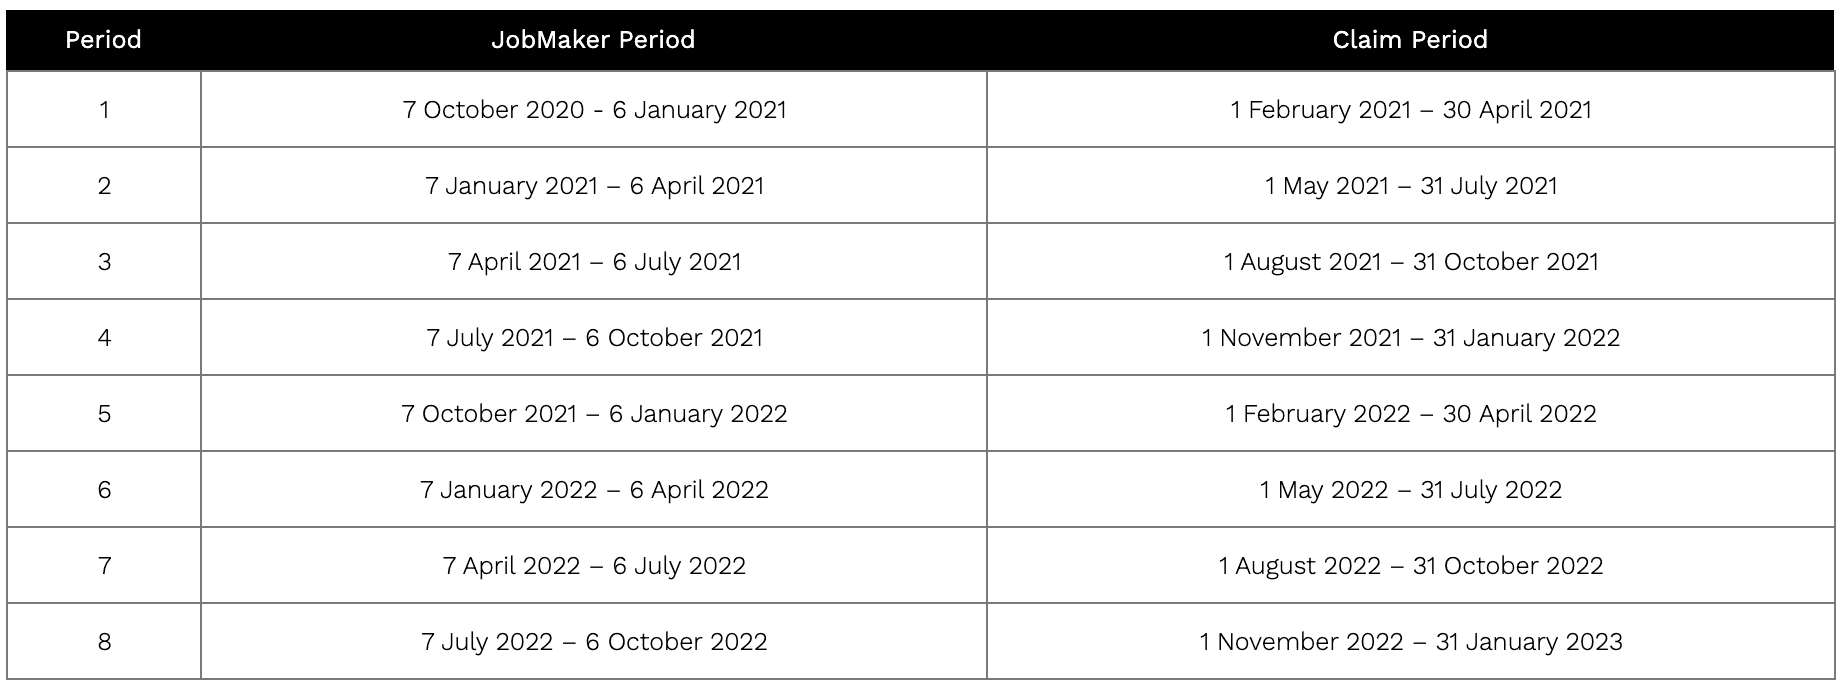 JobMaker claim period table